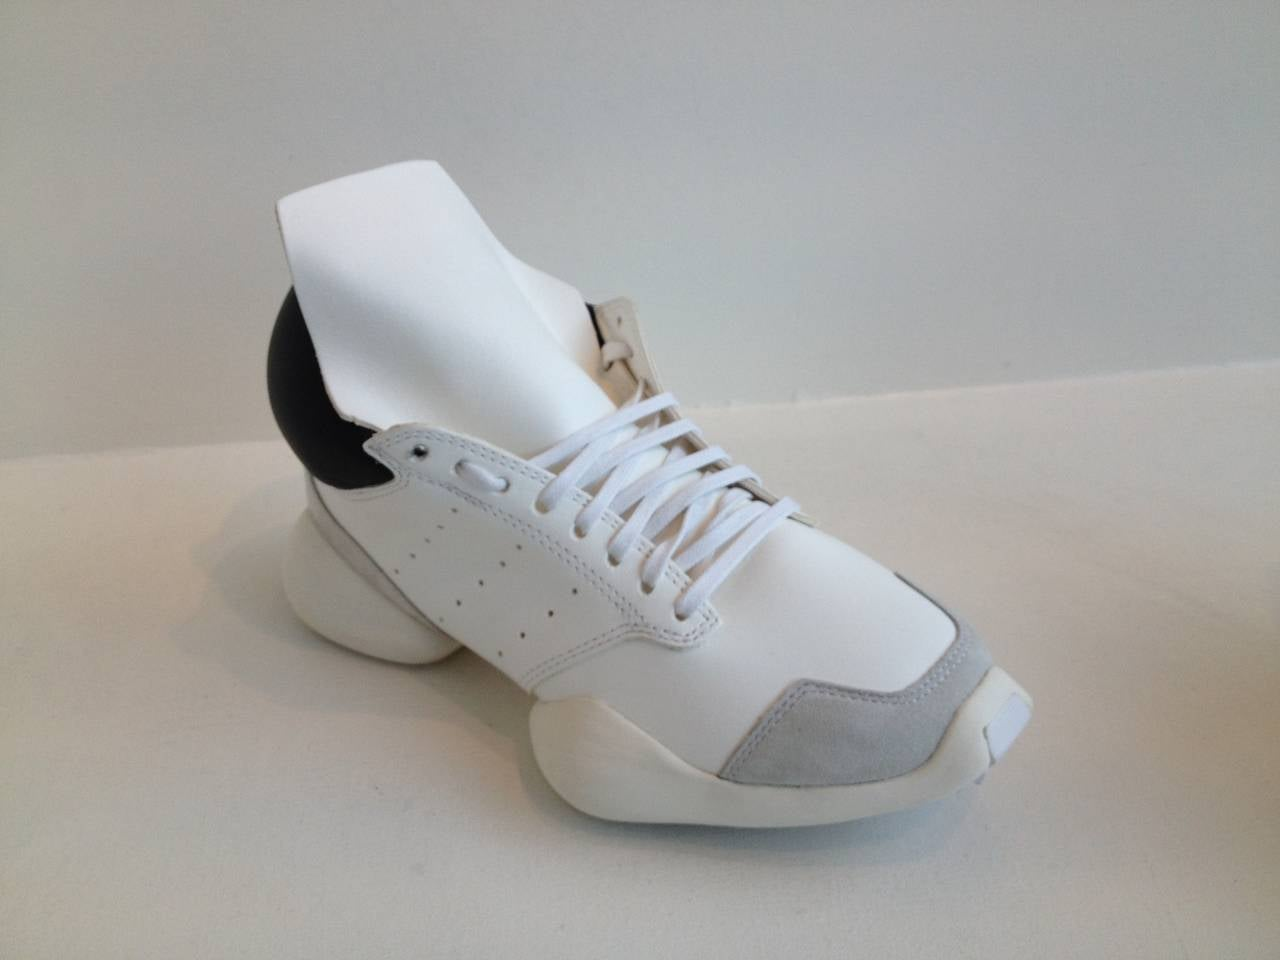 Rick Owens for Adidas White Puffy Sneakers 3